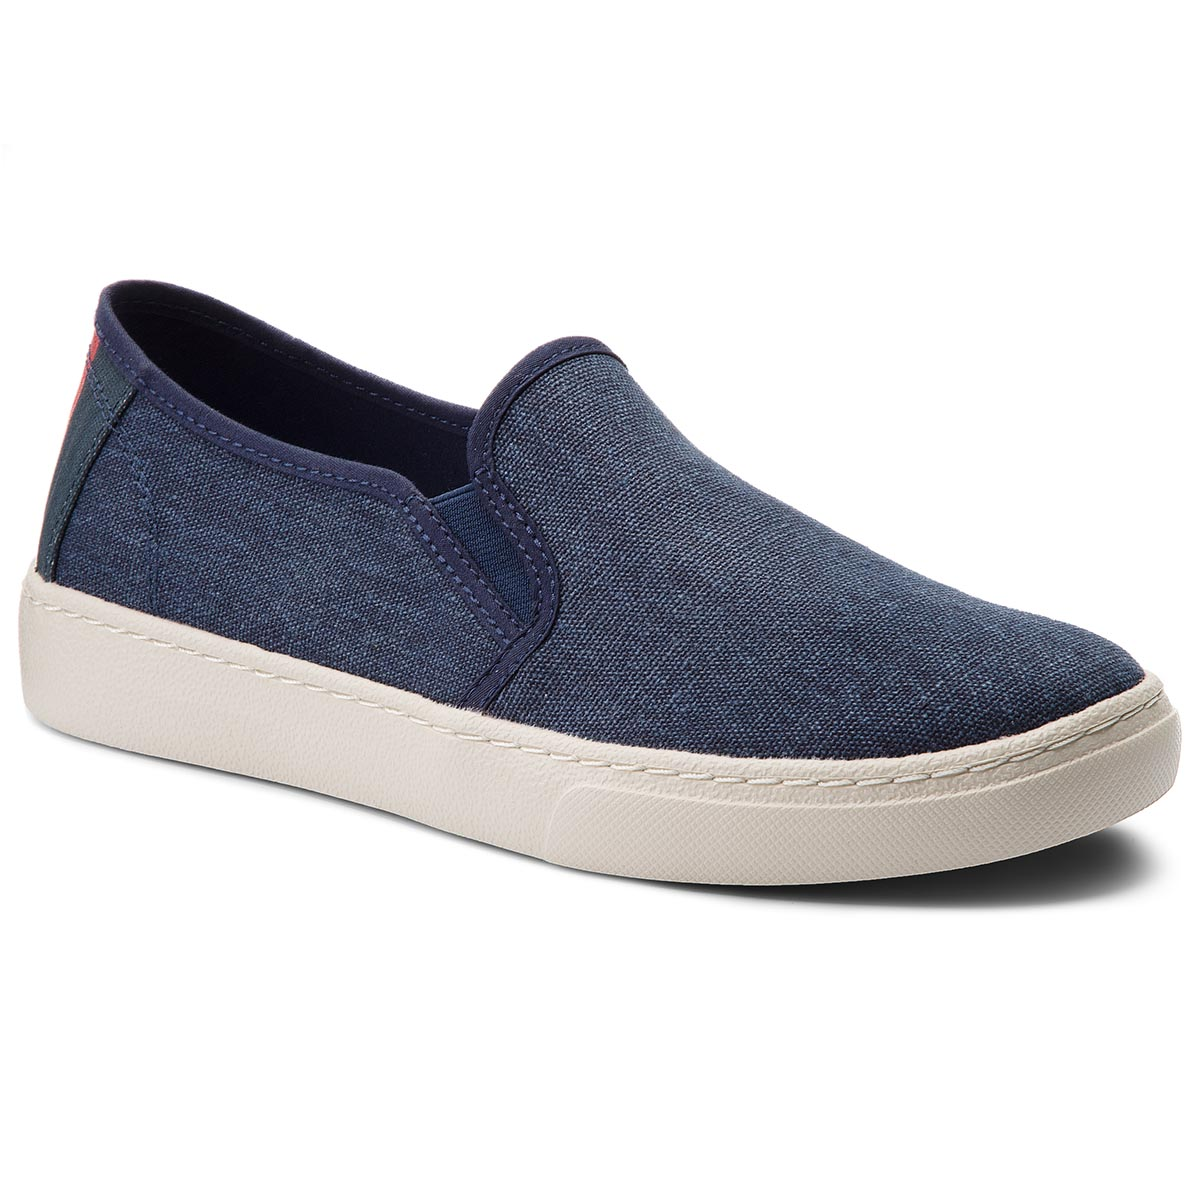 Teniși TOMMY JEANS - Light Slip On EM0EM00152 Black Iris 431